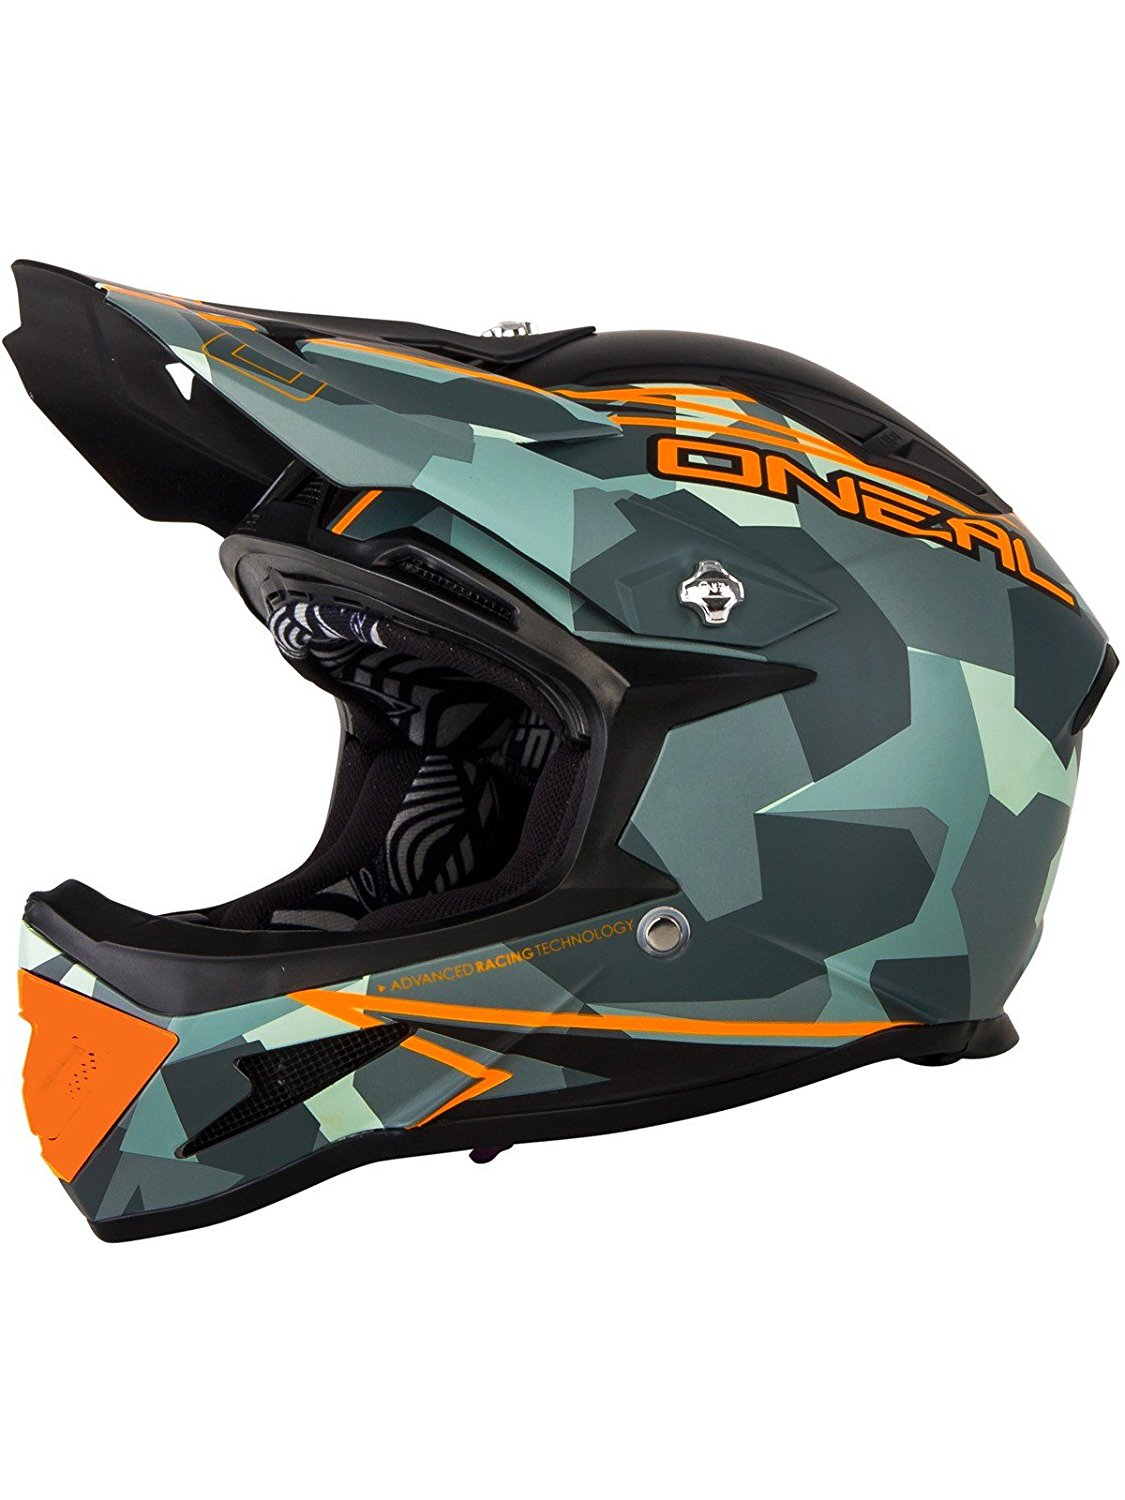 d5202ab7 Cheap Warp Helmet, find Warp Helmet deals on line at Alibaba.com